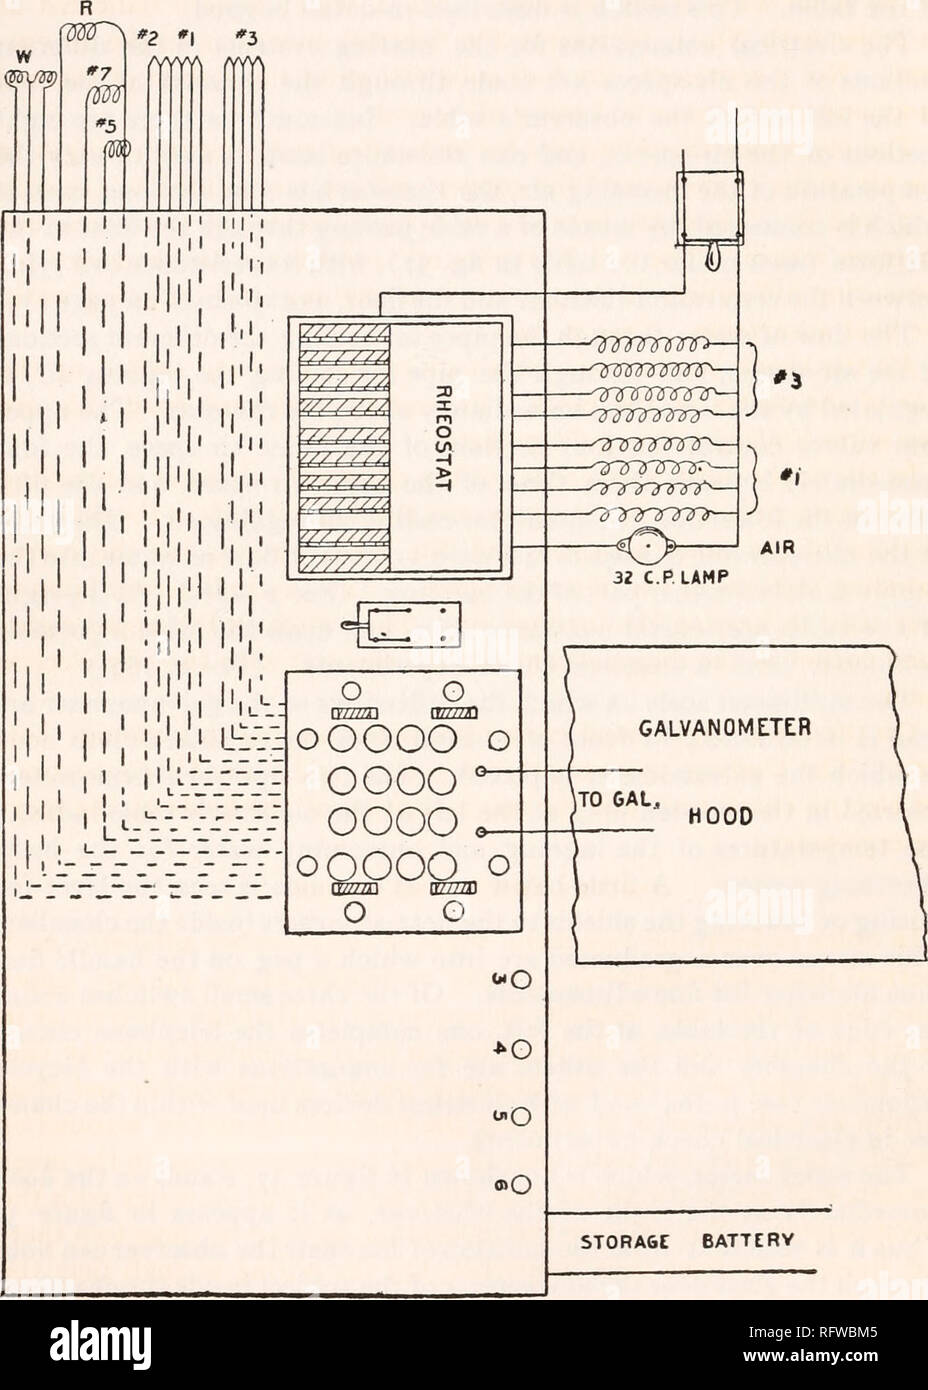 hight resolution of carnegie institution of washington publication 133 a respiration calorimeter electrical connections on the